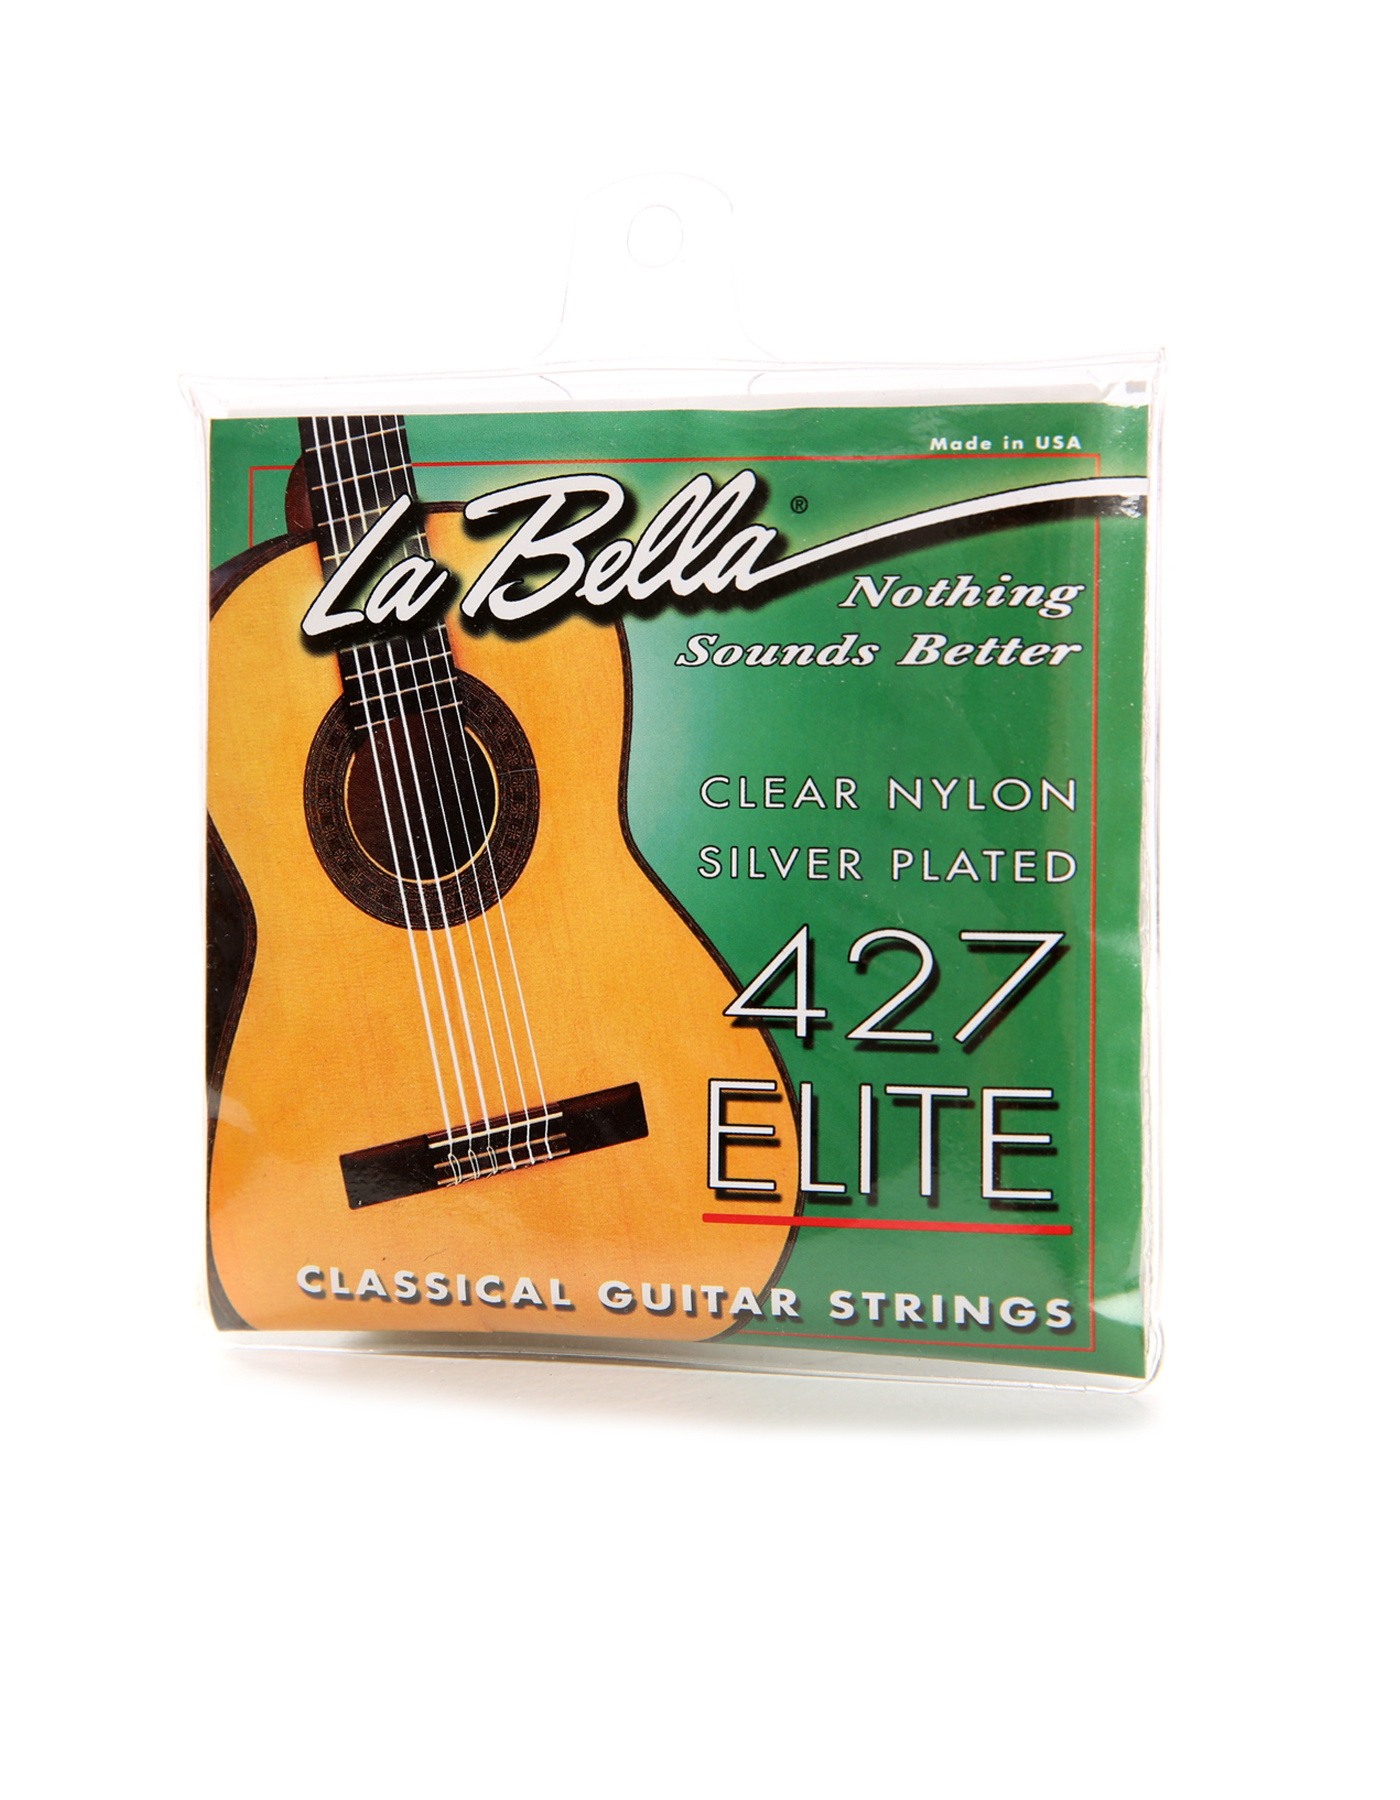 Cuerdas de la guitarra La Bella 427 Elite tensión media